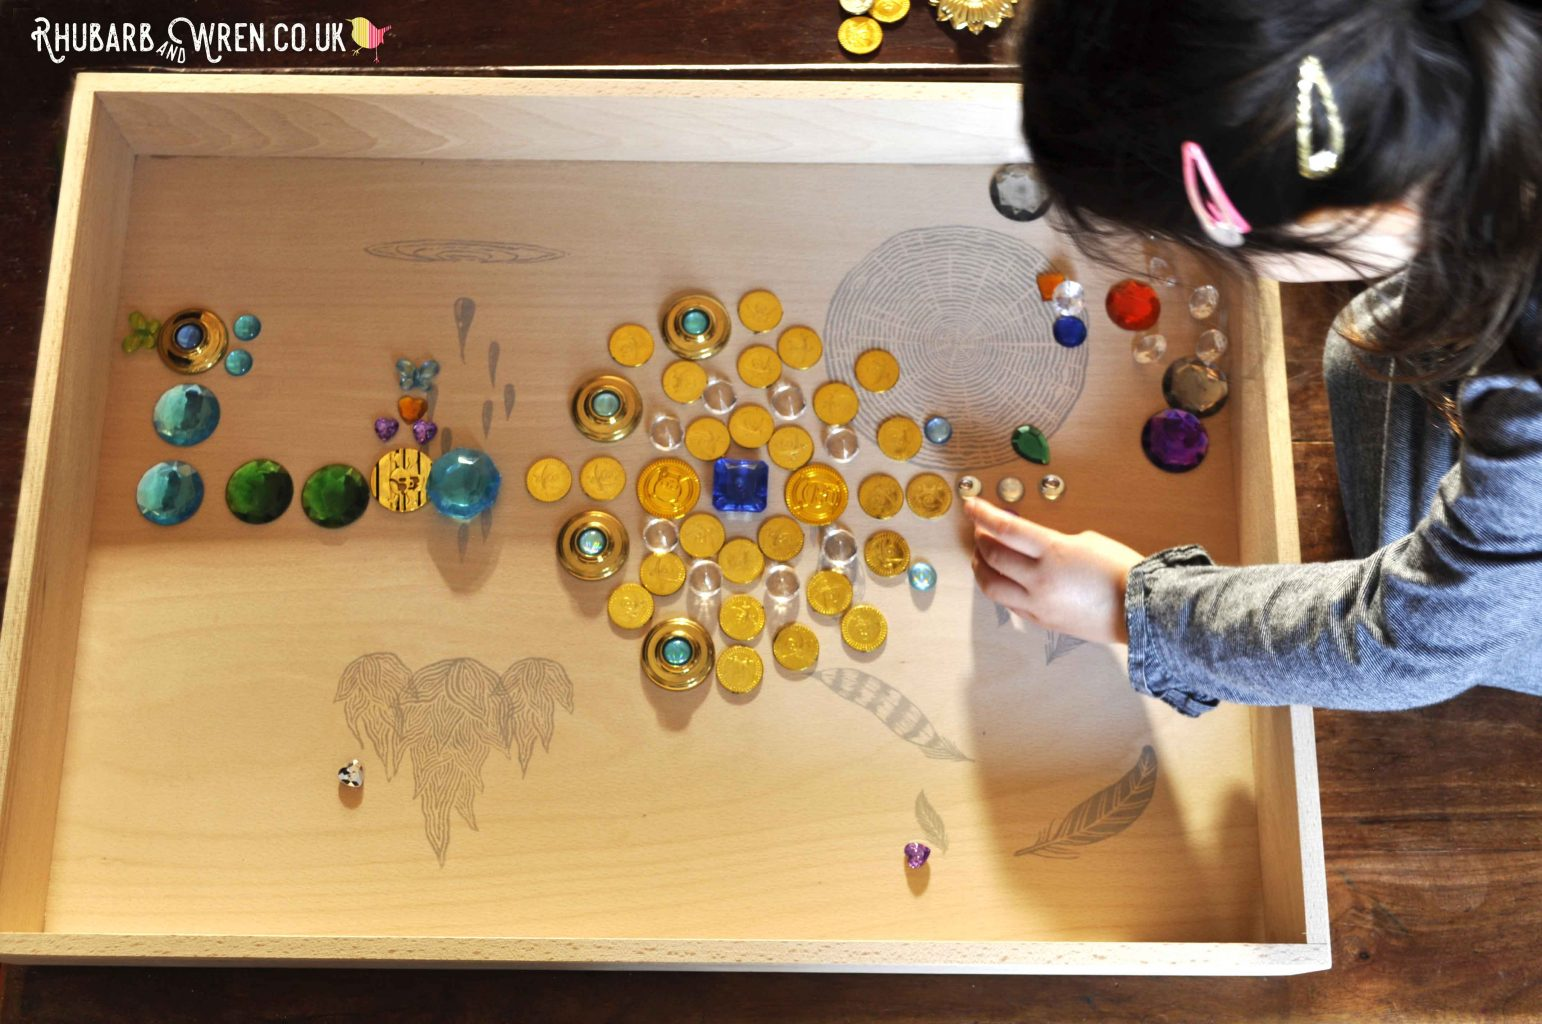 Making patterns with treasure in a grapat free play box